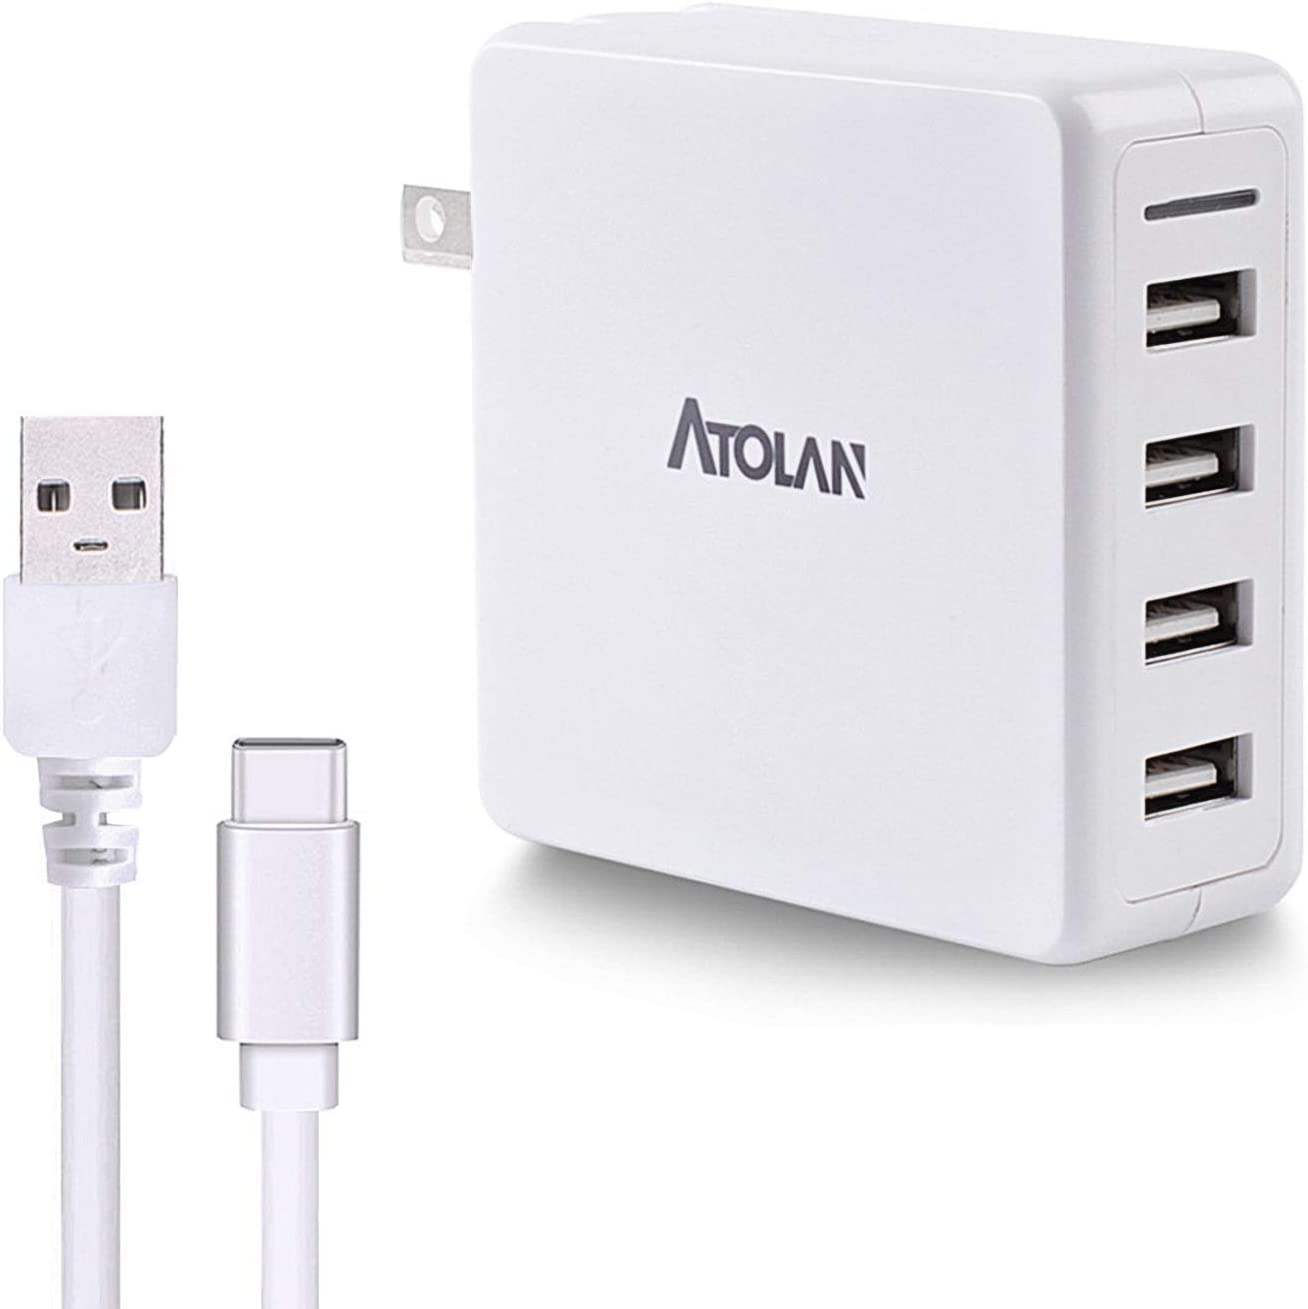 40W USB Wall Charger, ATOLAN 8A 4-Port Multi-Port Charger, Charging Station with Foldable Plug, Compatible for iPhone 11/XS/XS Max/XR/X/8/7/6/Plus, iPad Pro/Air 2/Mini 4/3, Galaxy/Note, LG, and More